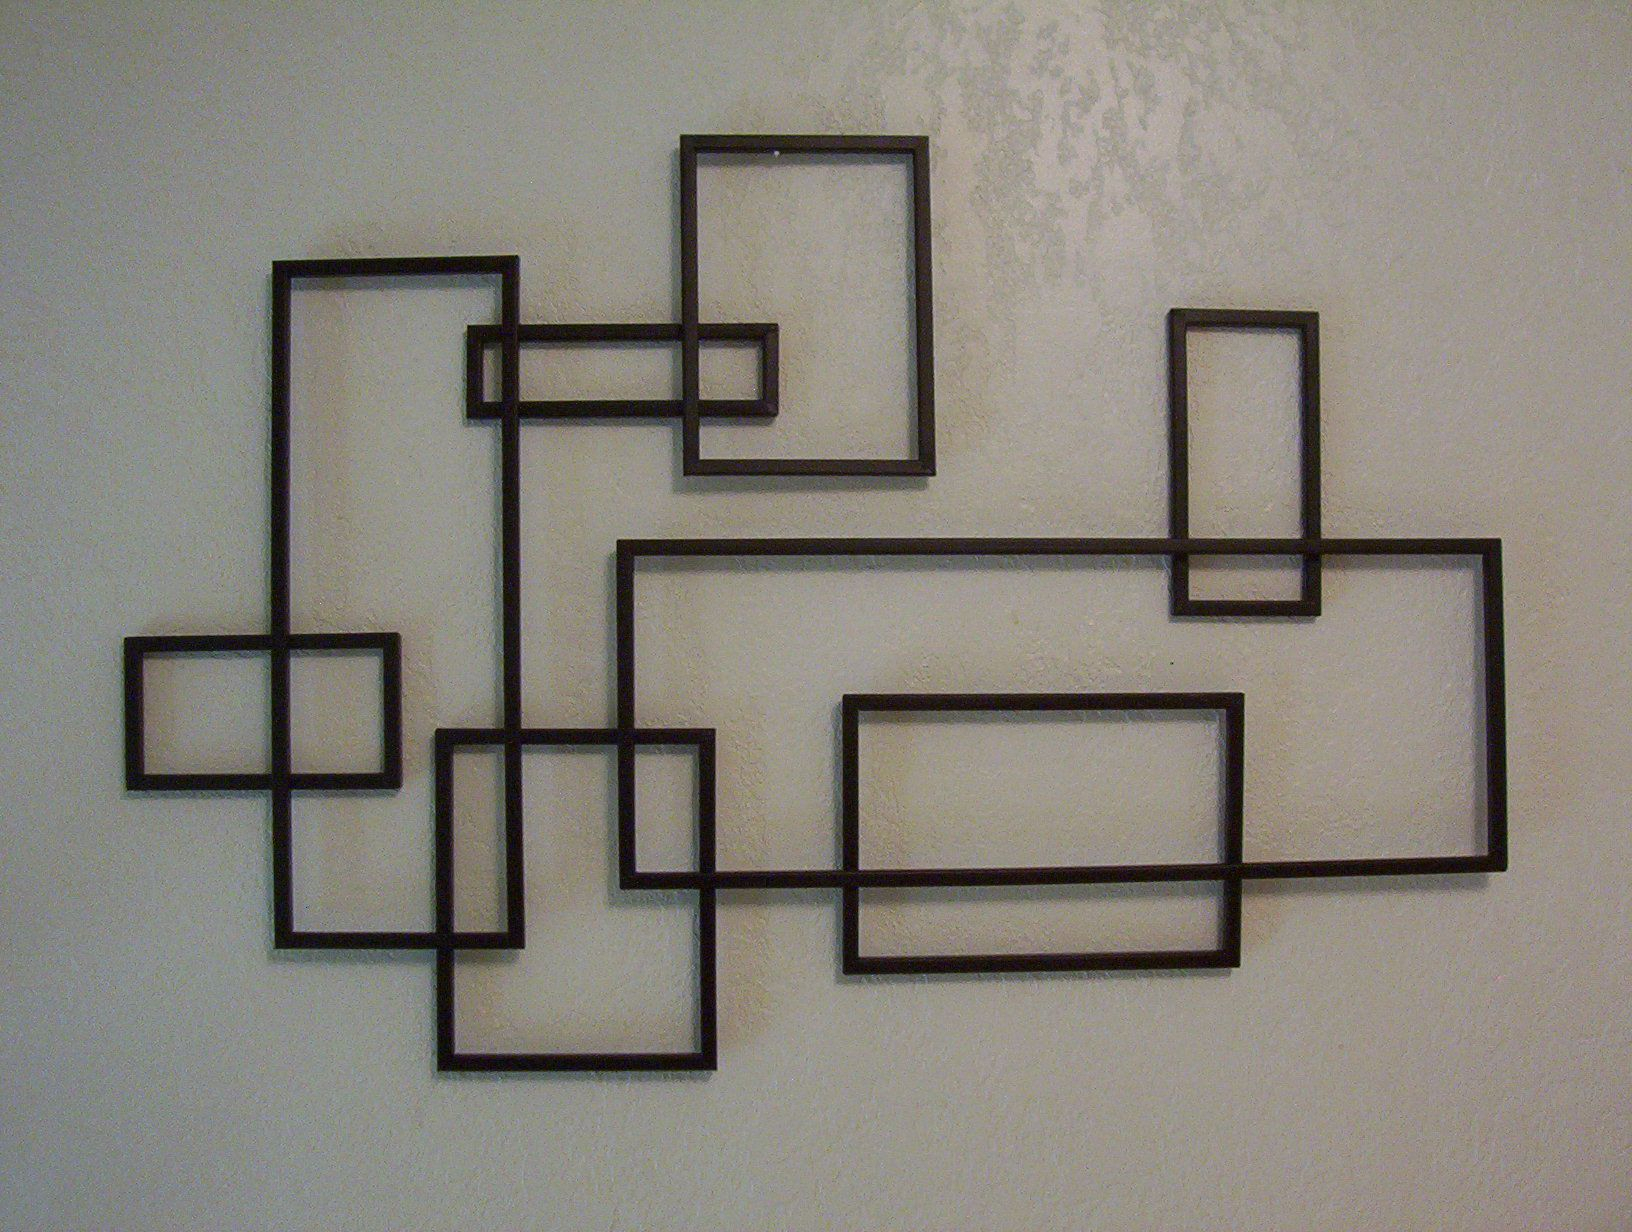 Contemporary Geometric Wall Decor Intended For Newest Mid Century Modern ~ De Stijl Style Geometric Metal Wall Sculpture (Gallery 3 of 20)